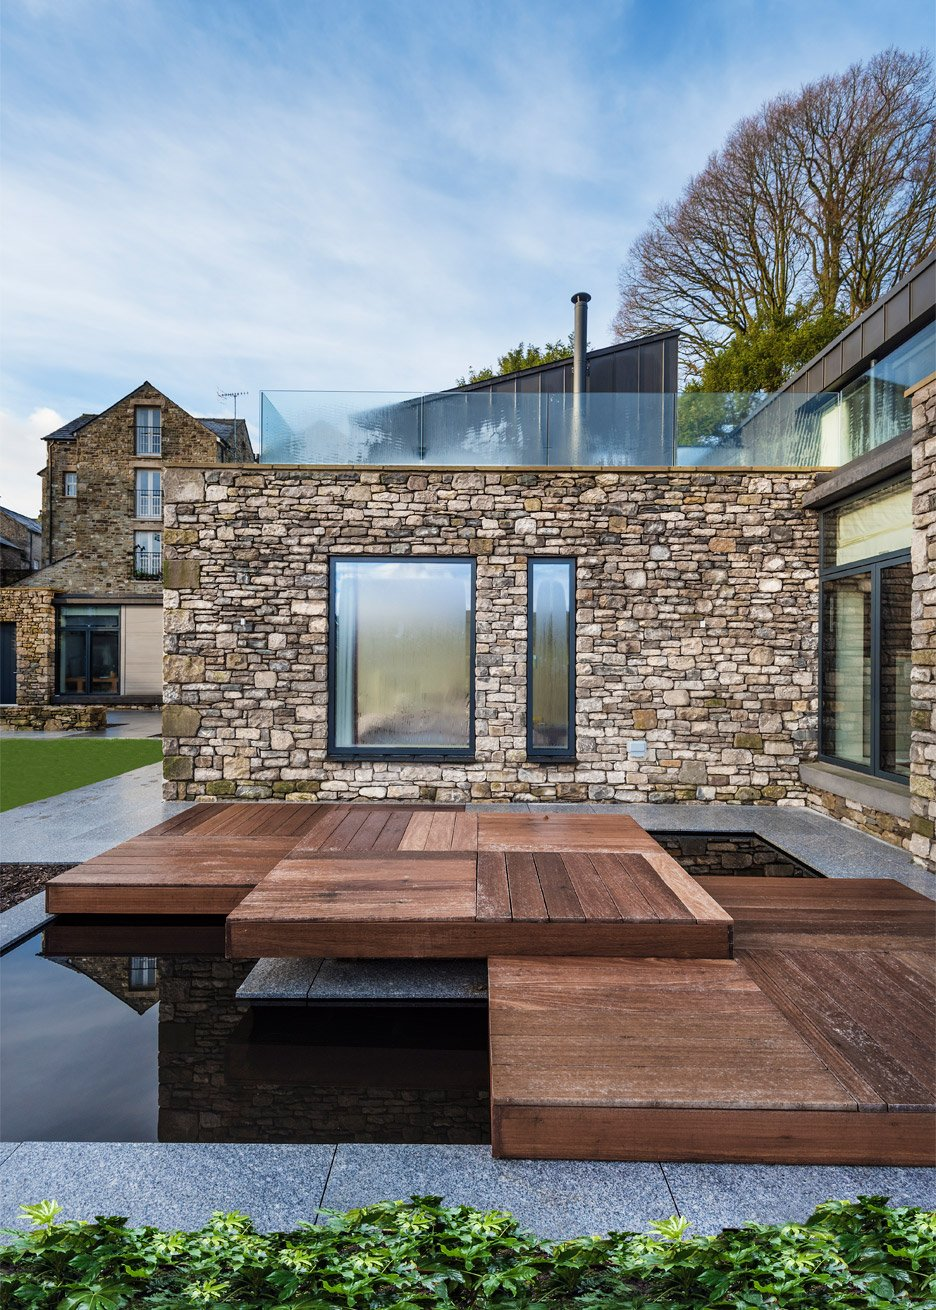 Residential Architecture: Stone and zinc house in Cumbria, England by Bennetts Associates